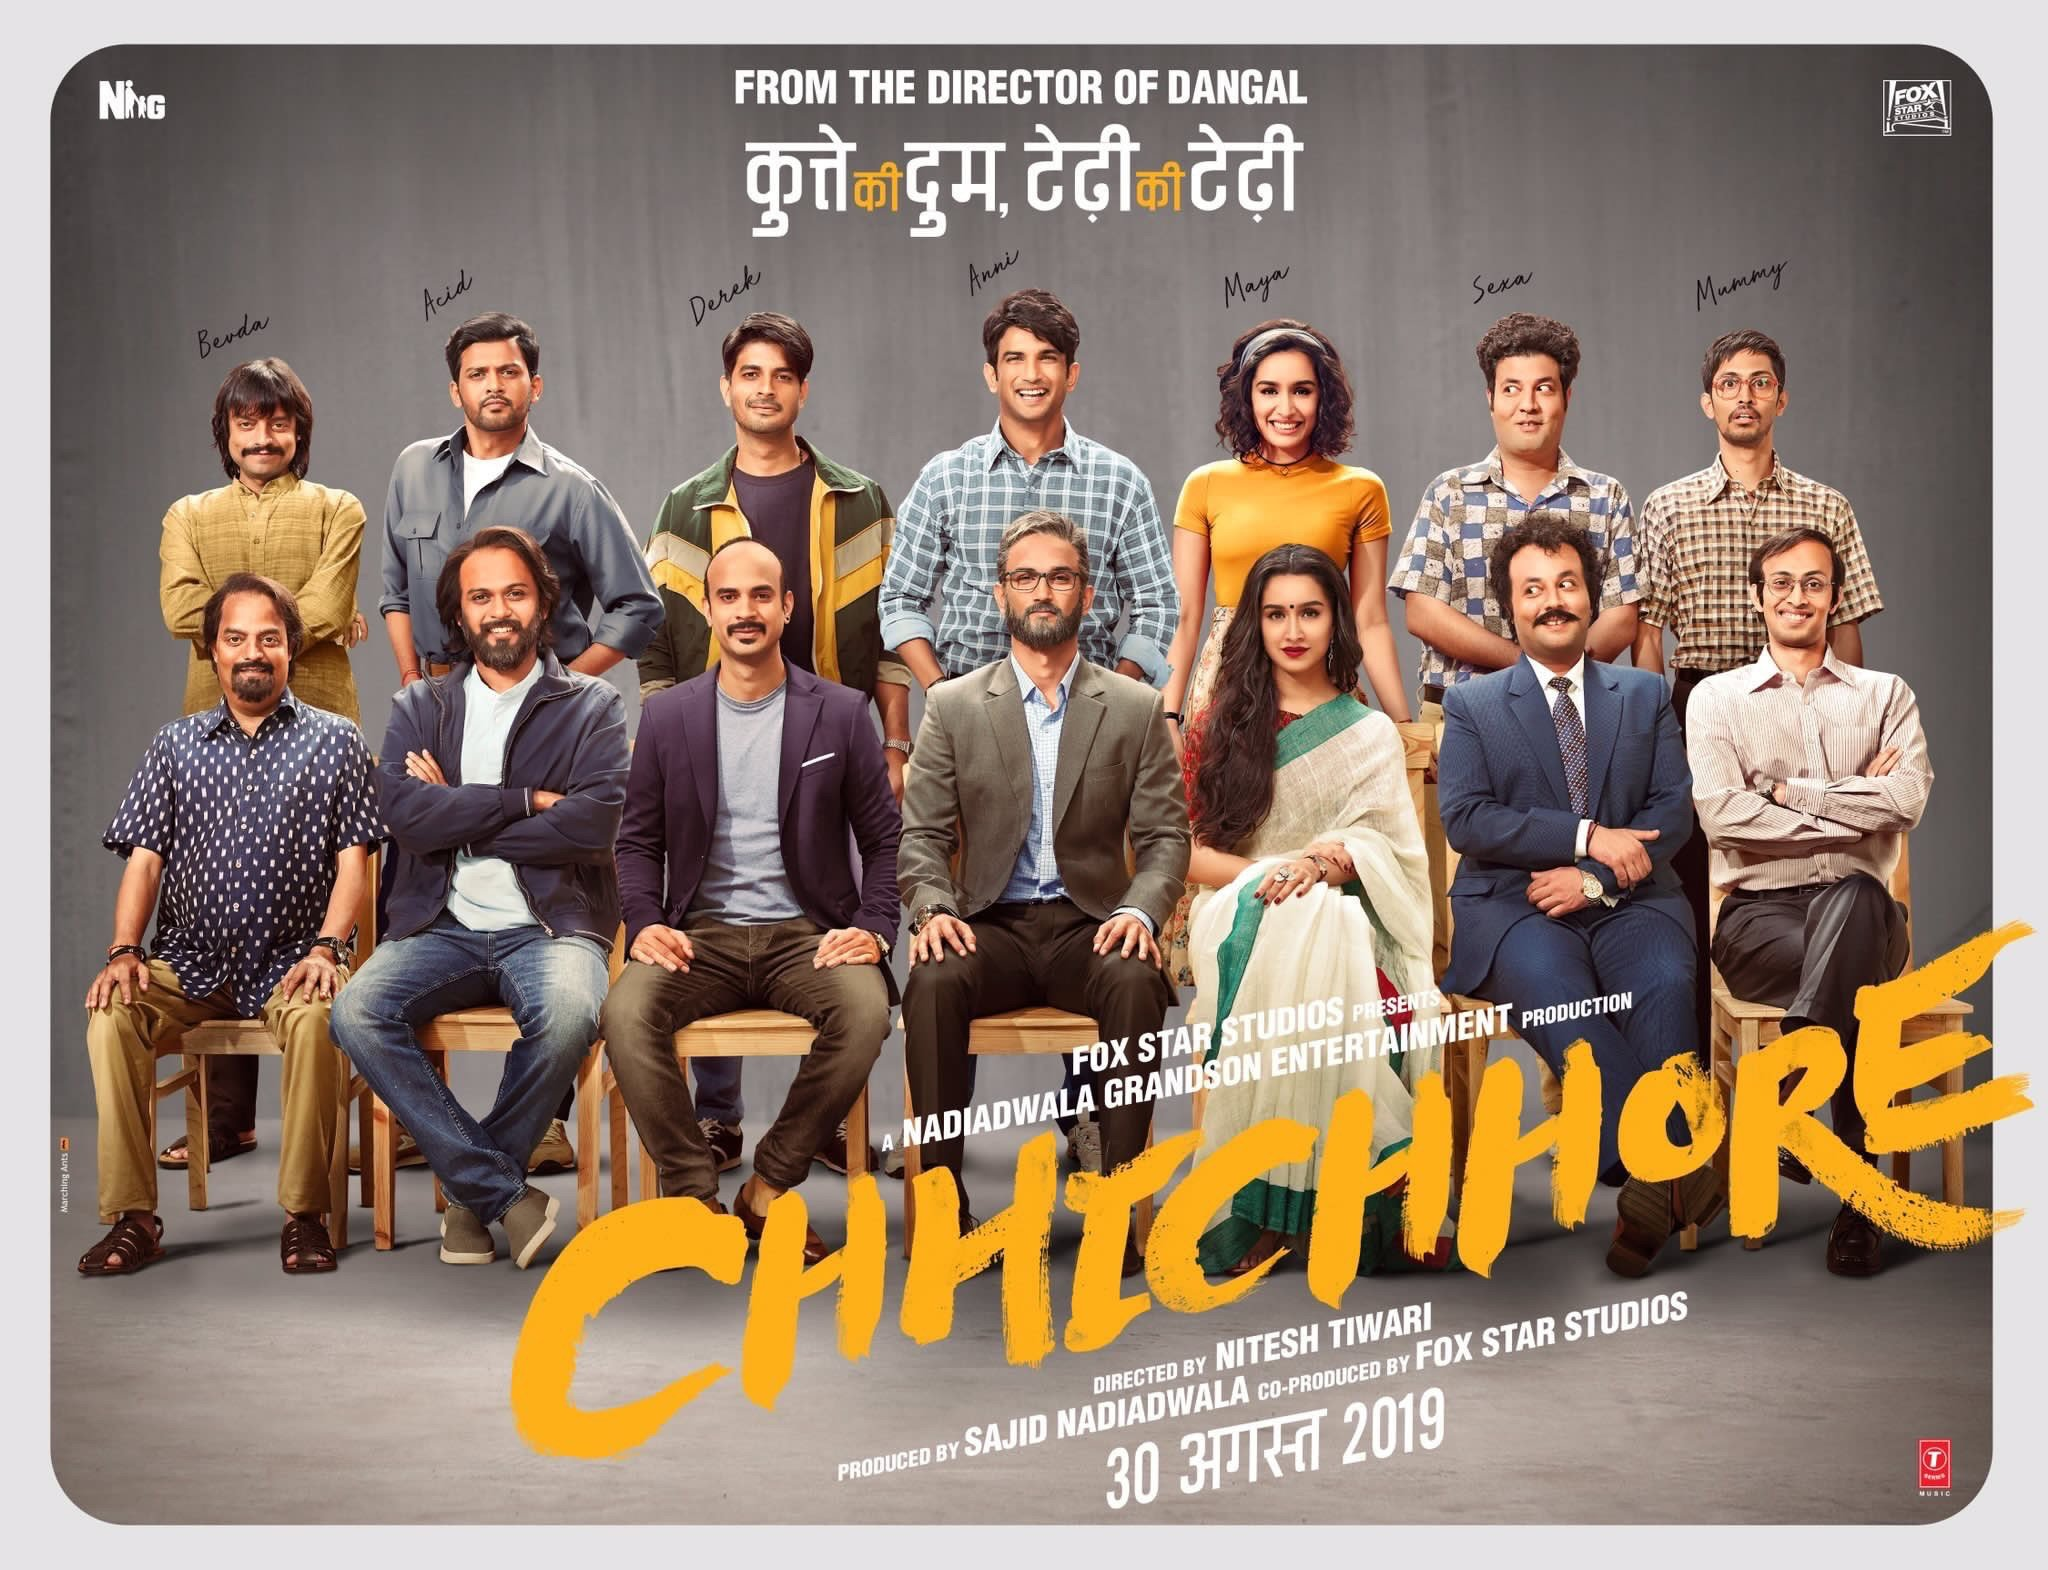 Sushant Singh Rajput on picking up used tees from students for 'Chhichhore' : It's an impulsive trait